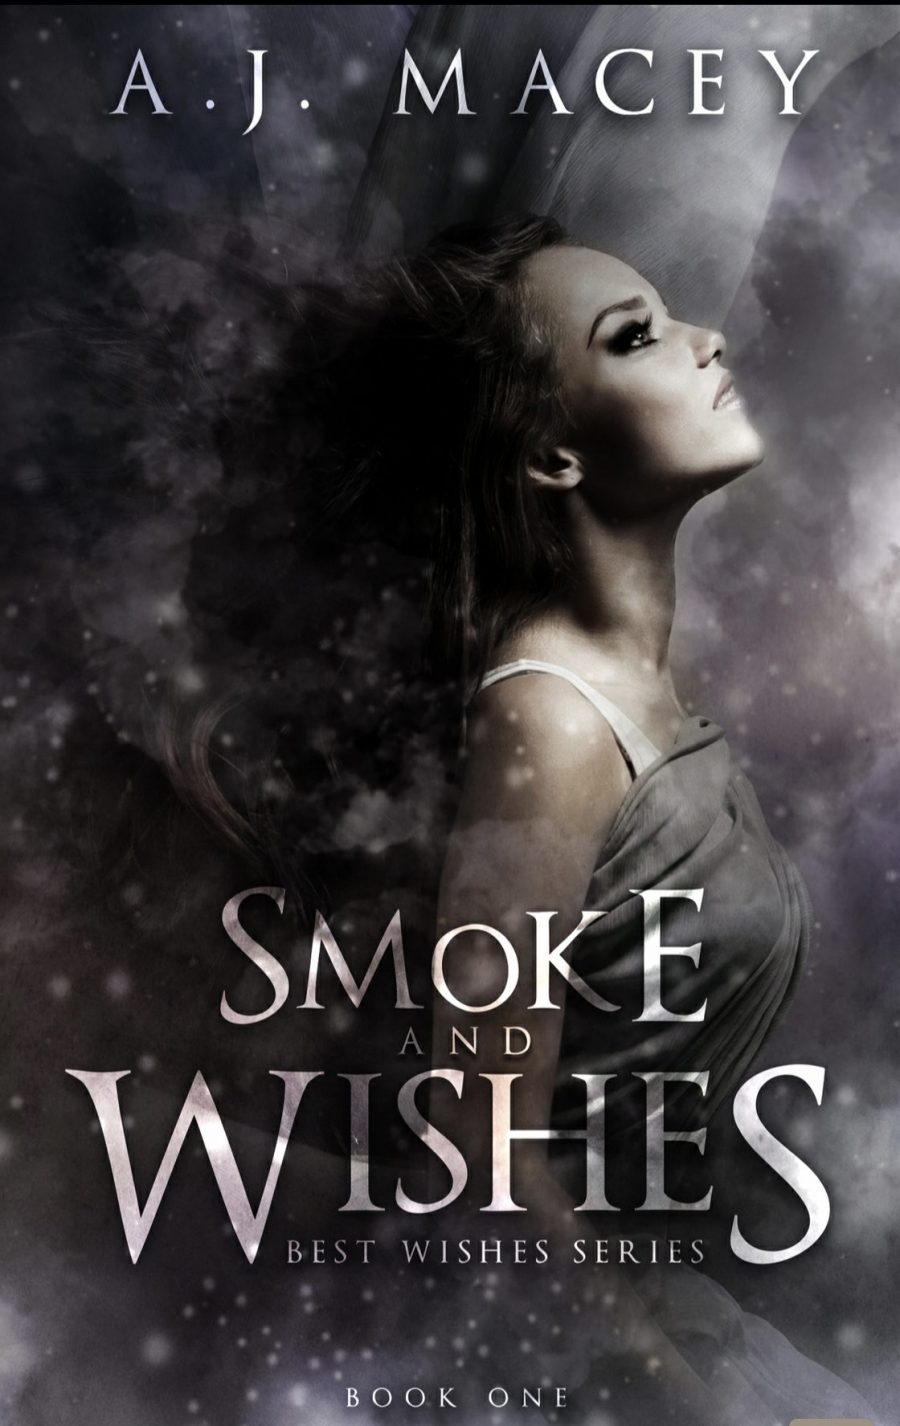 Smoke and Wishes *Best Wishes Series - Book 1* by A.J. Macey - A Book Review #BookReview #RH #WhyChoose #PNR #ReverseHarem #Academy #Paranormal #BooksAndBlurbs